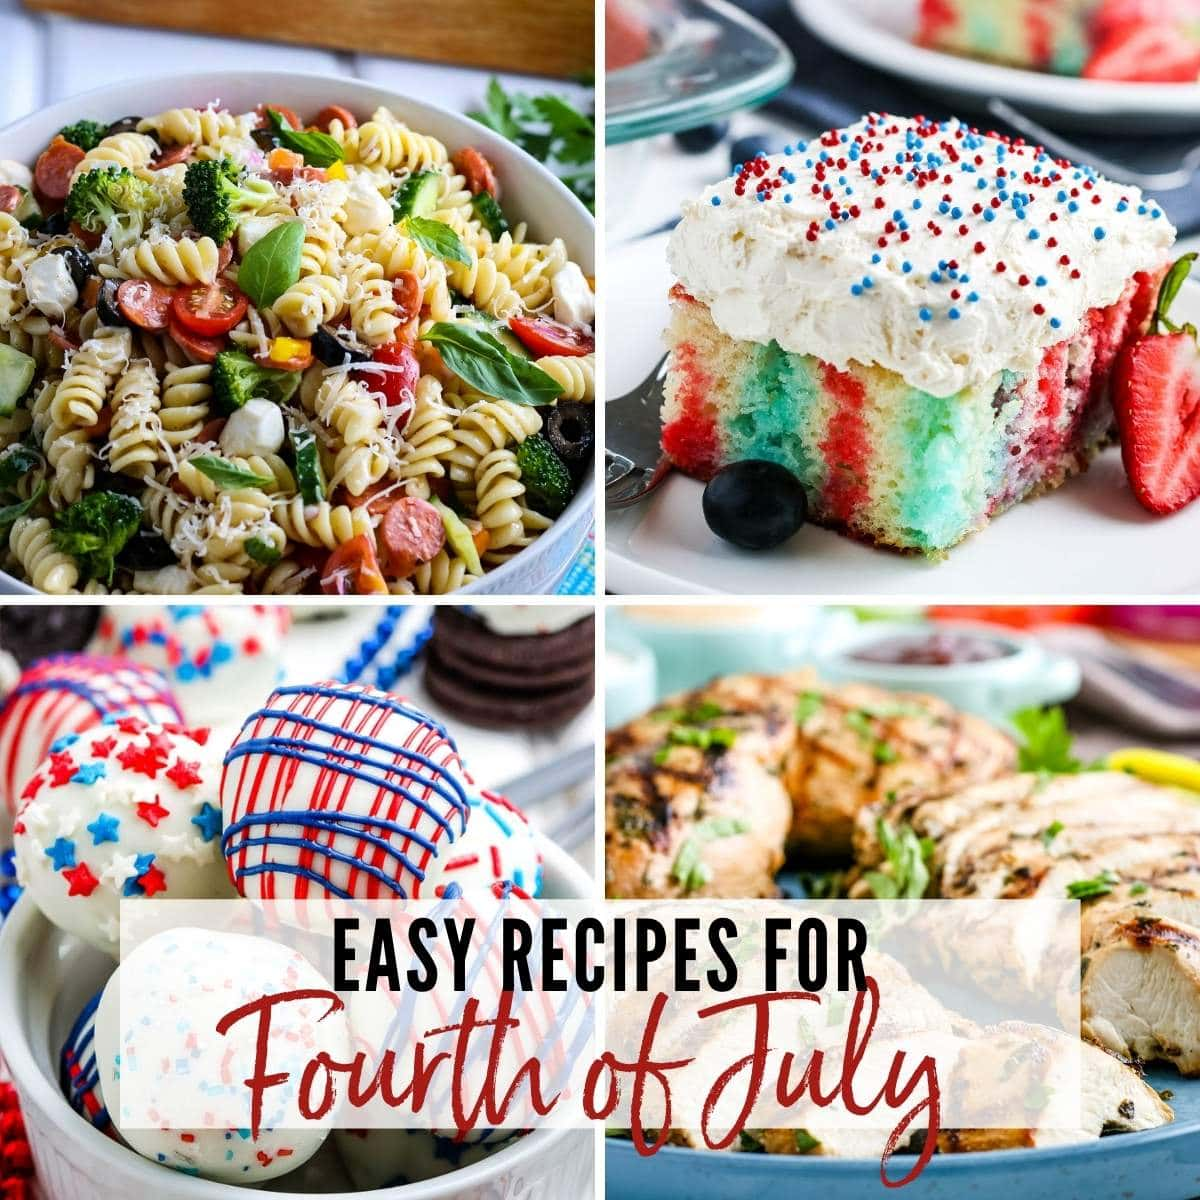 photos of pasta salad, grilled chicken, poke cake and oreo balls with graphic overlay